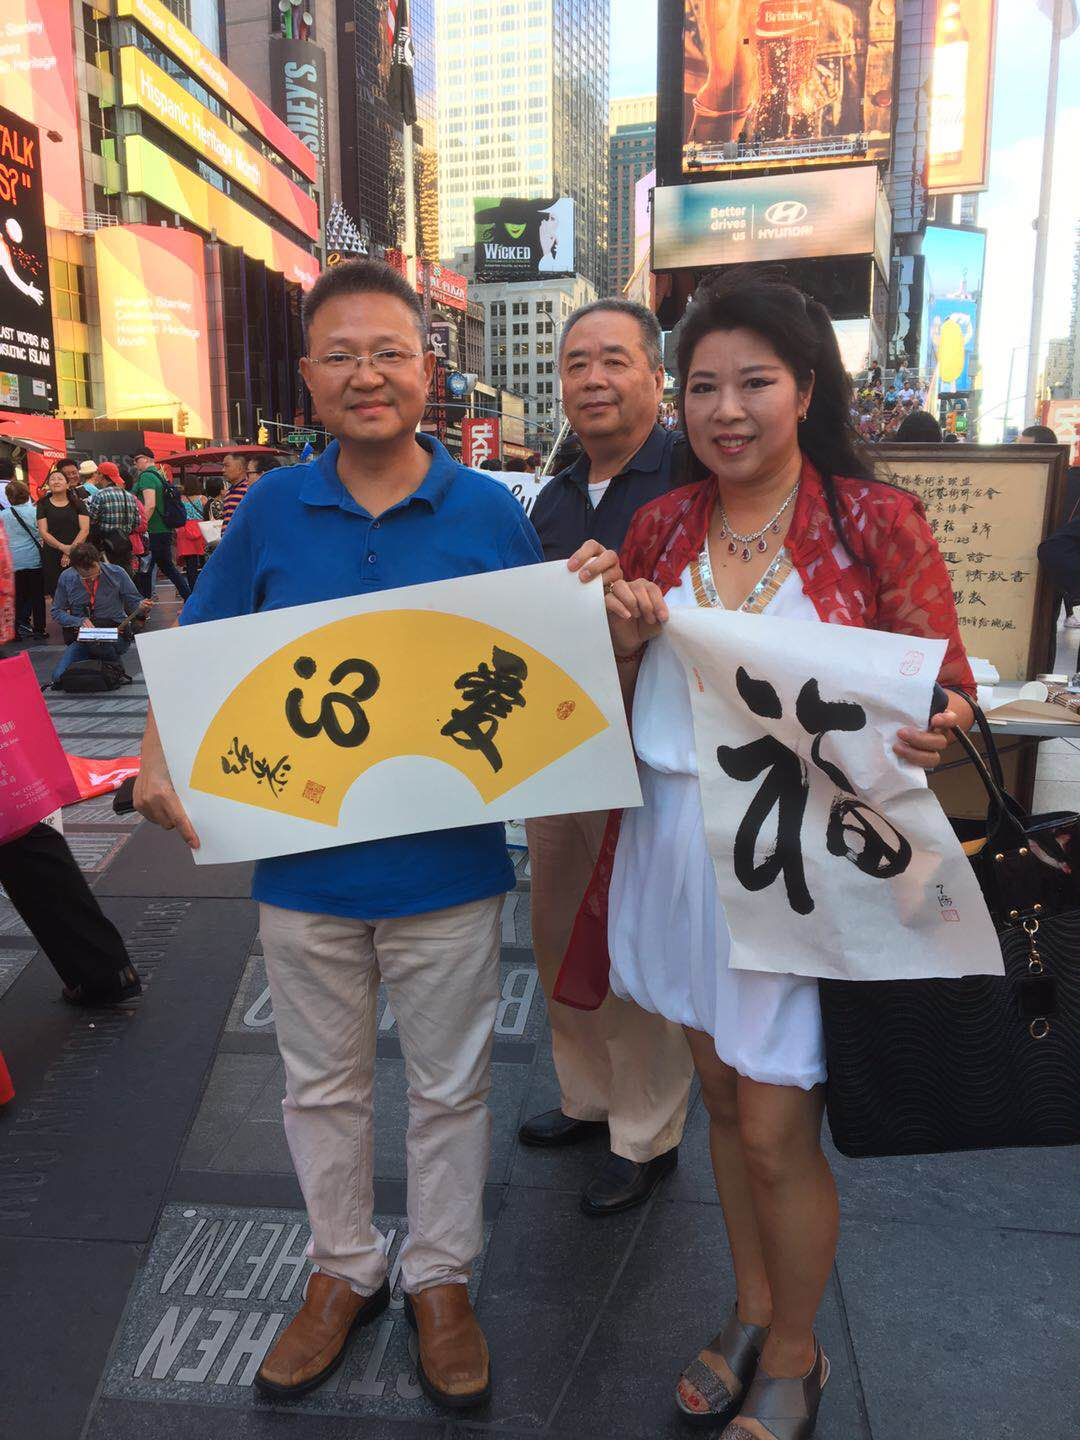 From right: artists with own work for donators. Ms Xi Yang, Mr. Nanren Shi